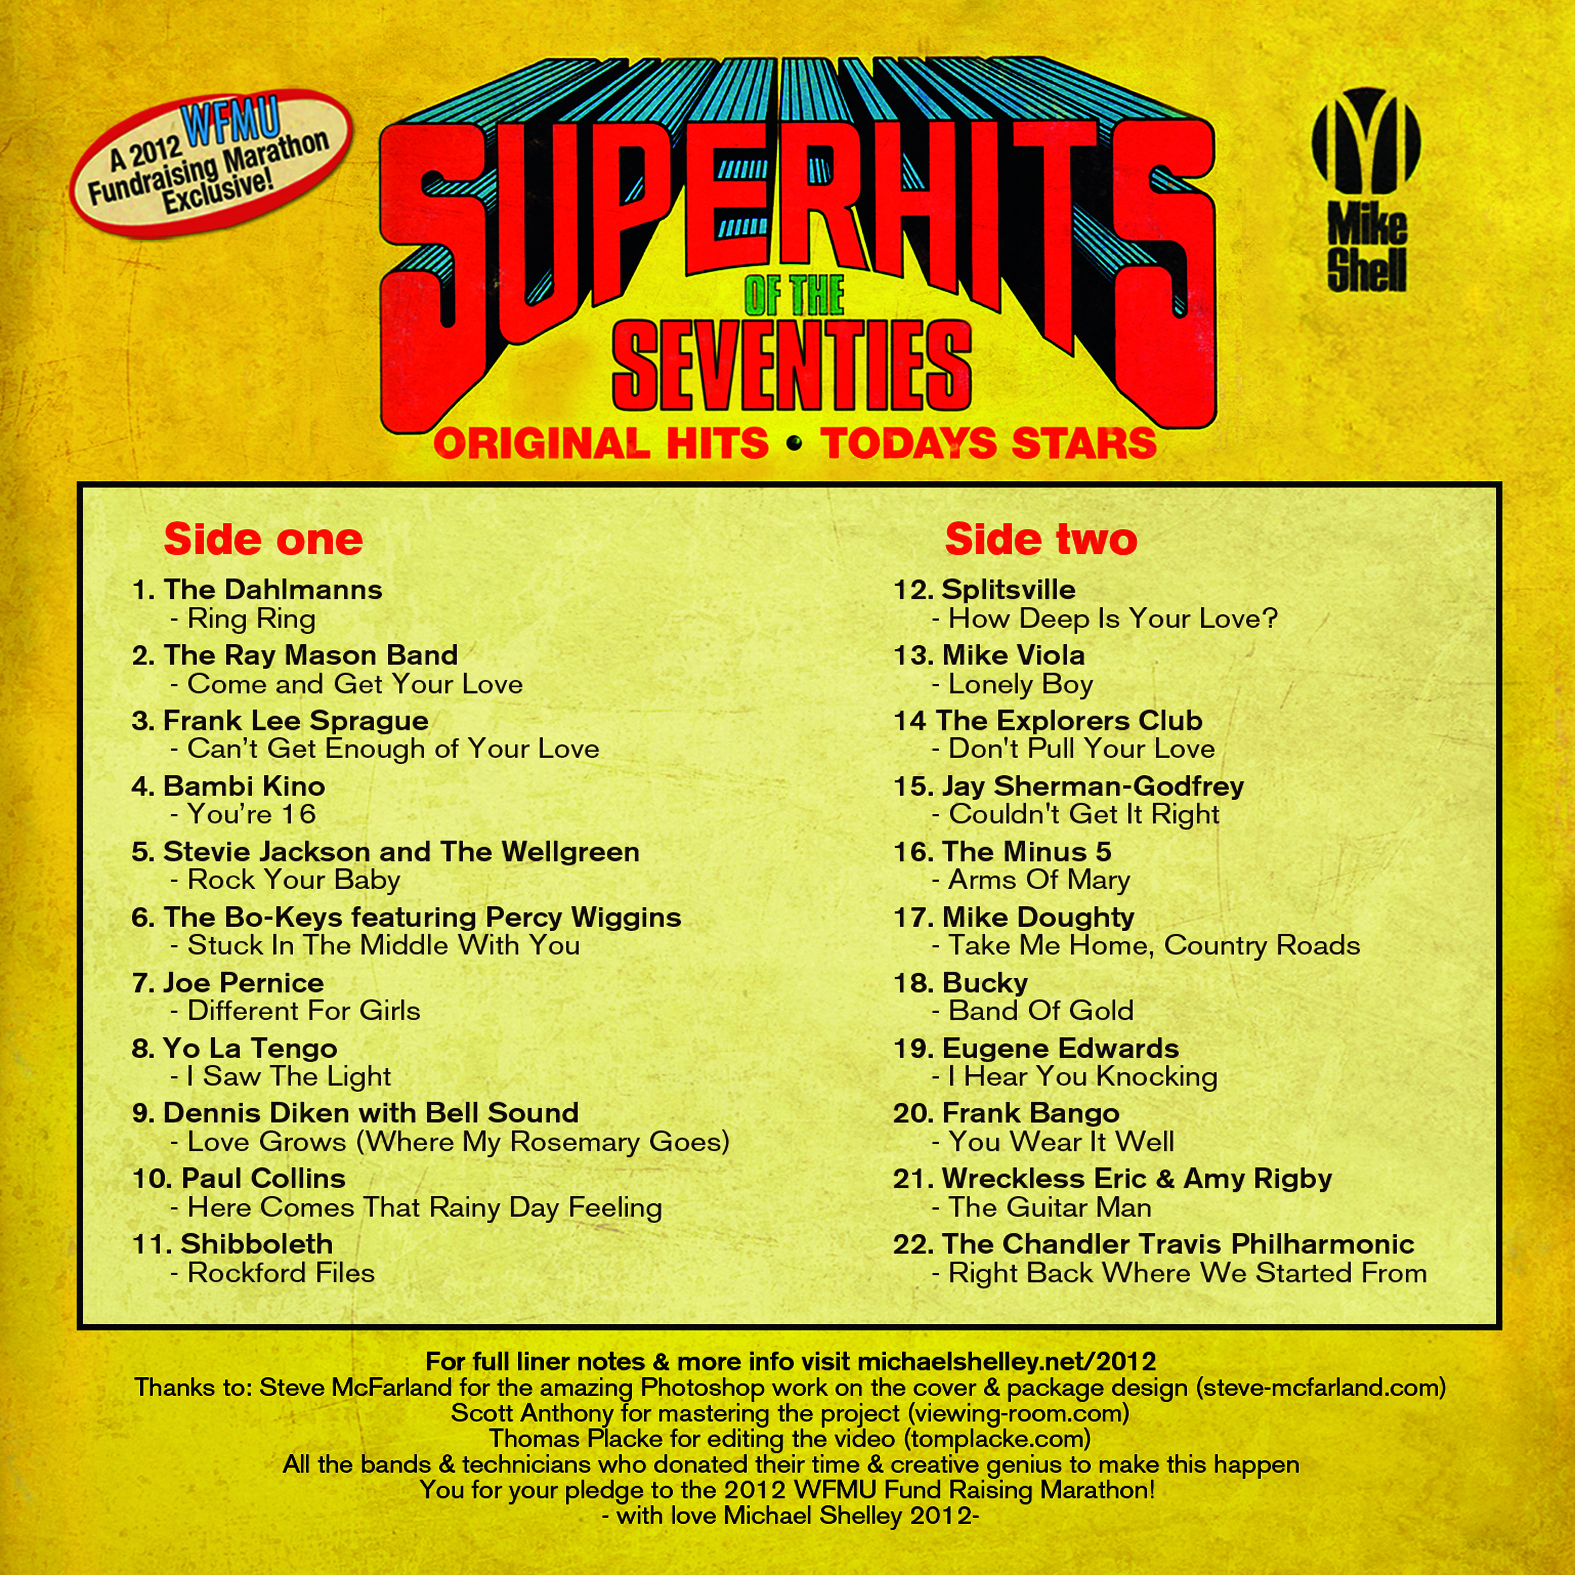 WFMU's Super Hits of the 70's back cover